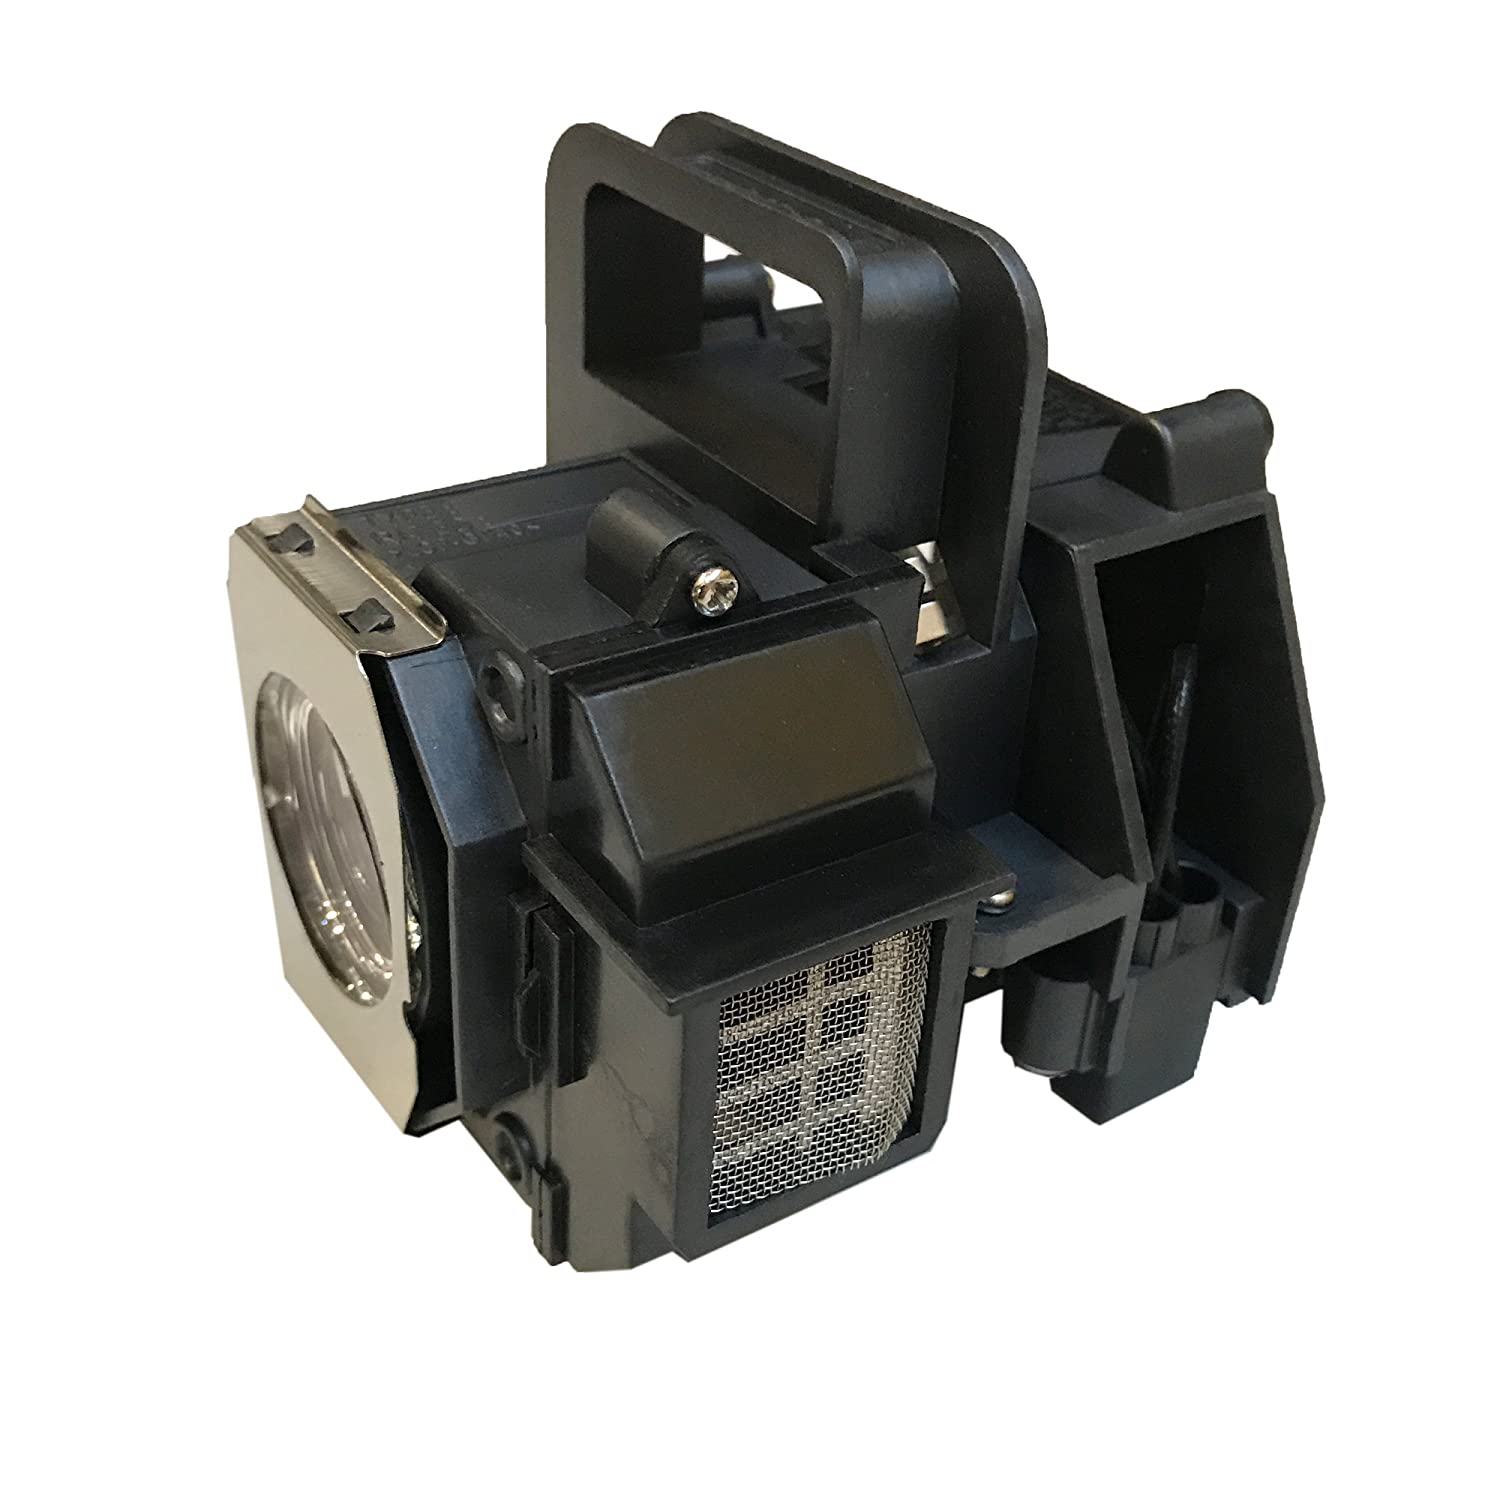 Level Filament with Housing by ORILIGHTS for Epson ELPLP49 Replacement Lamp A